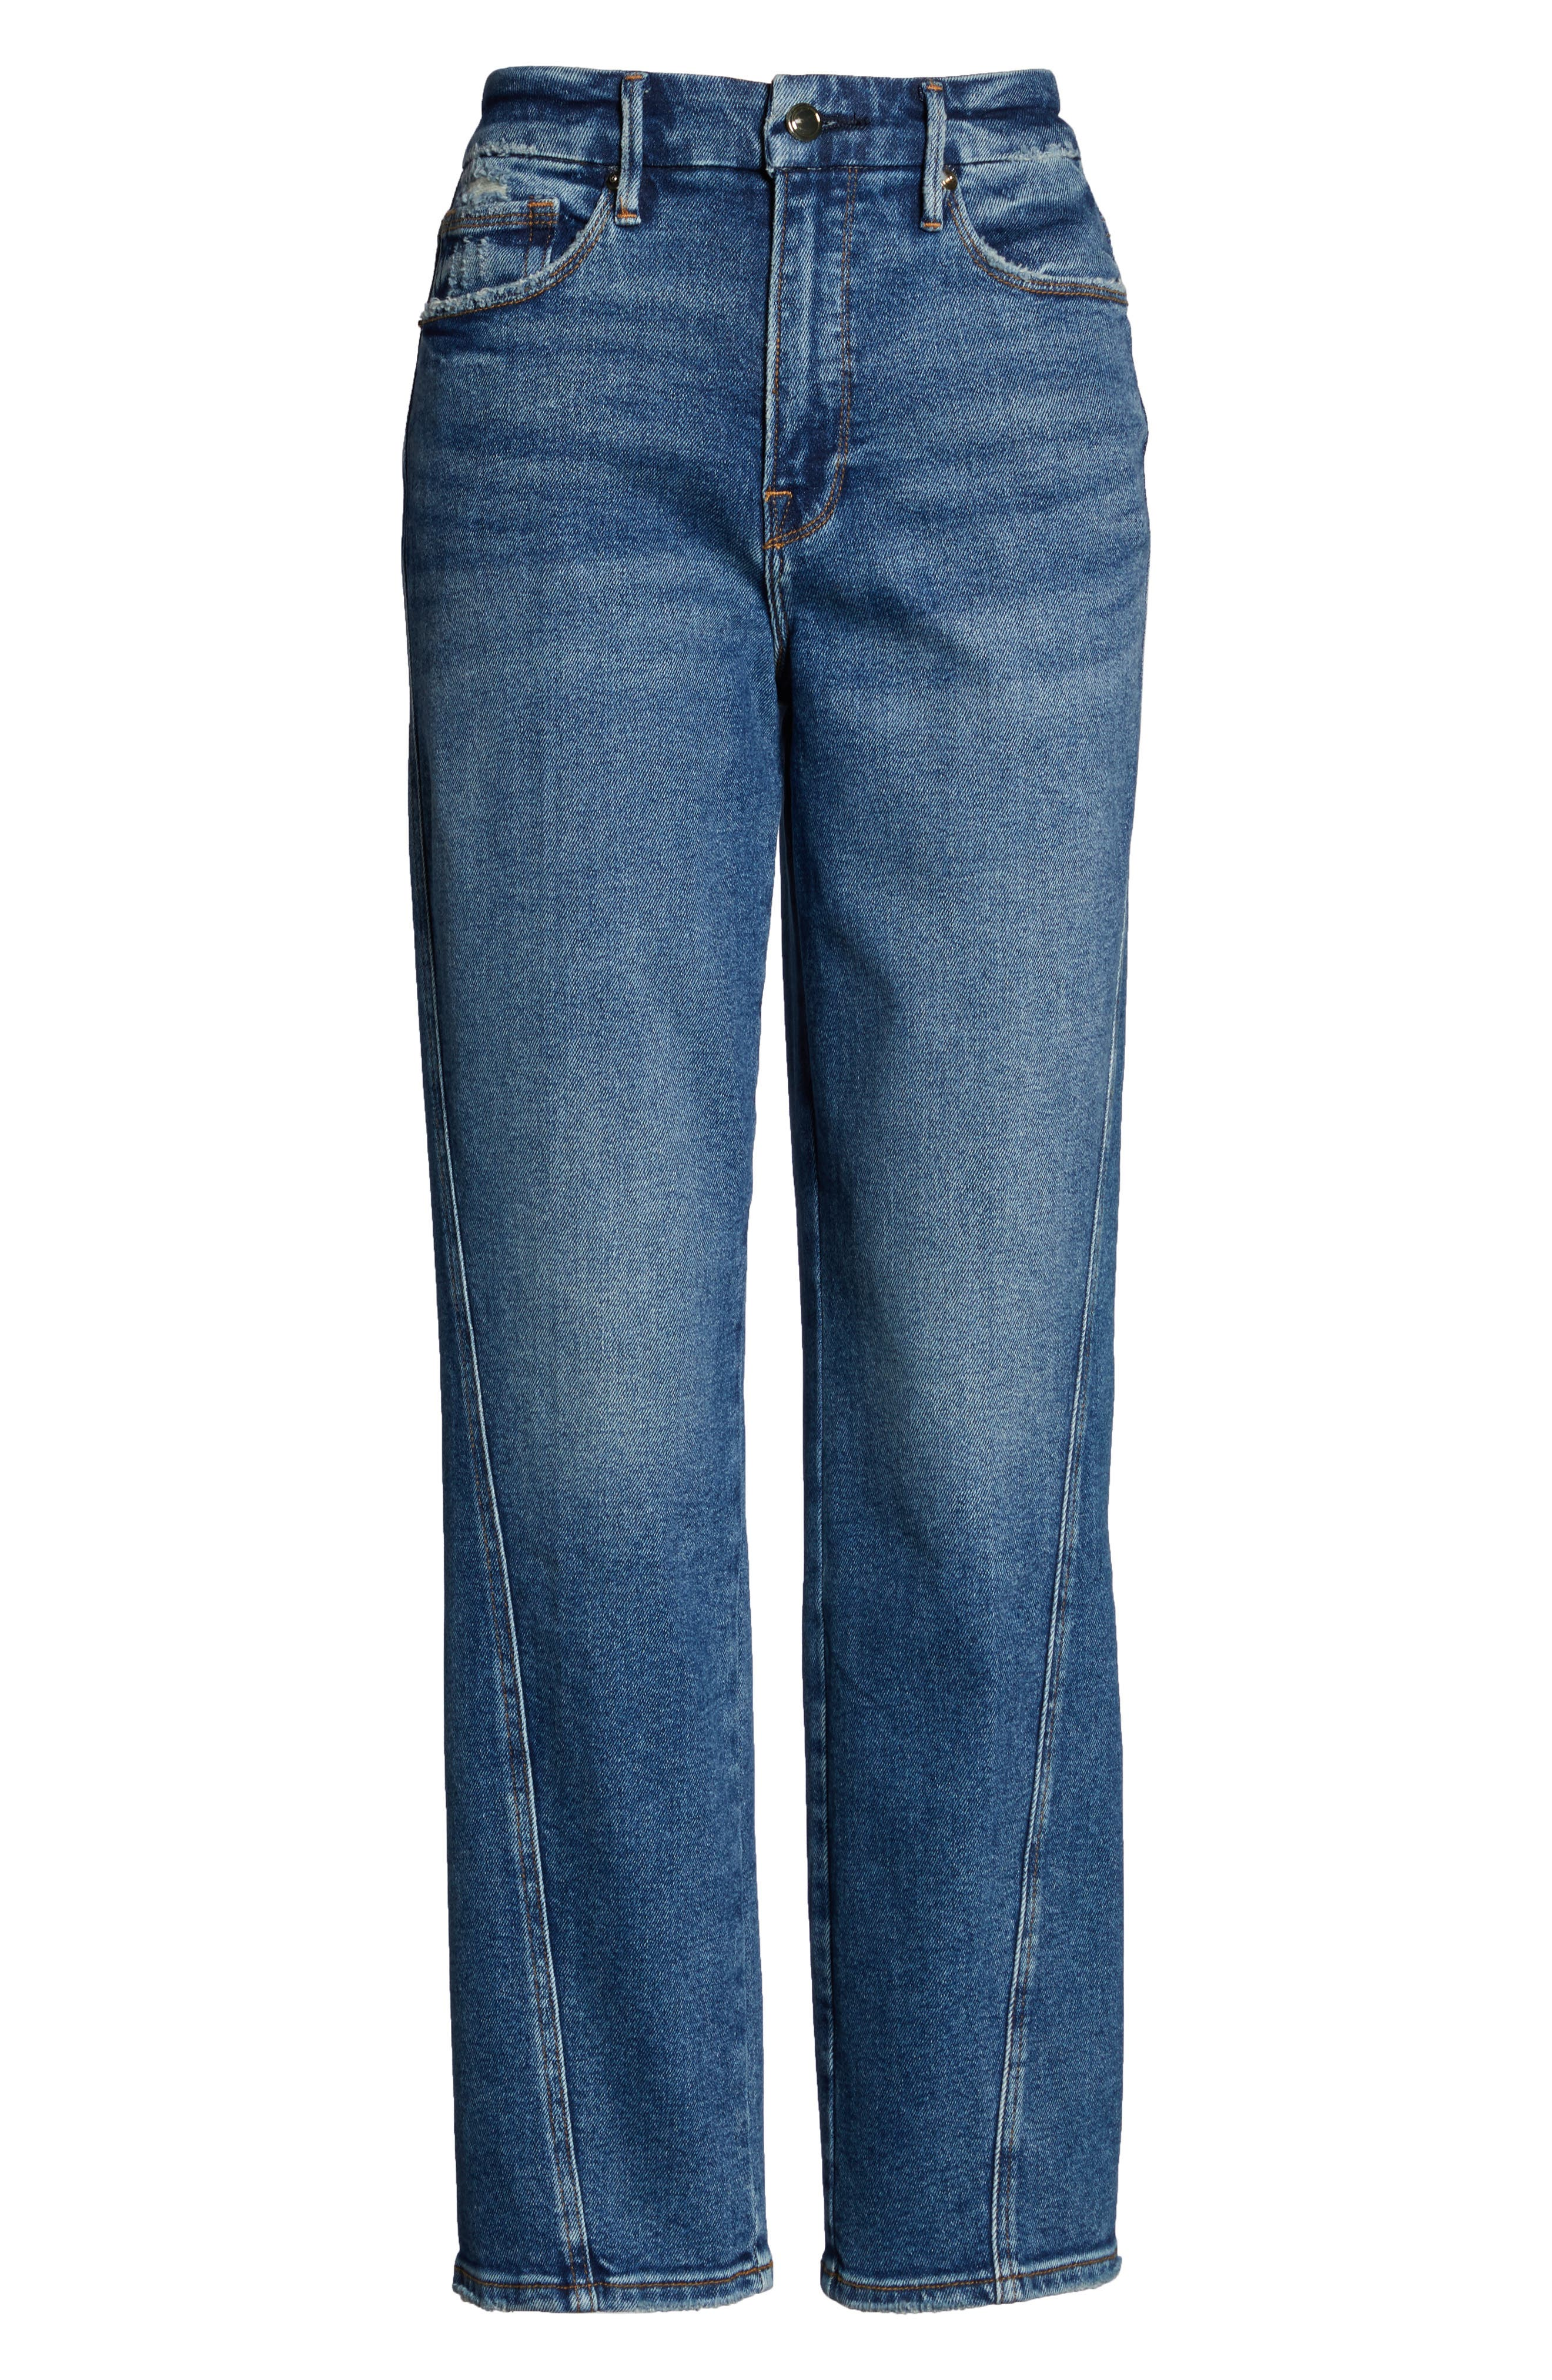 Twist Seam Crop Straight Leg Jeans,                             Alternate thumbnail 2, color,                             BLUE214